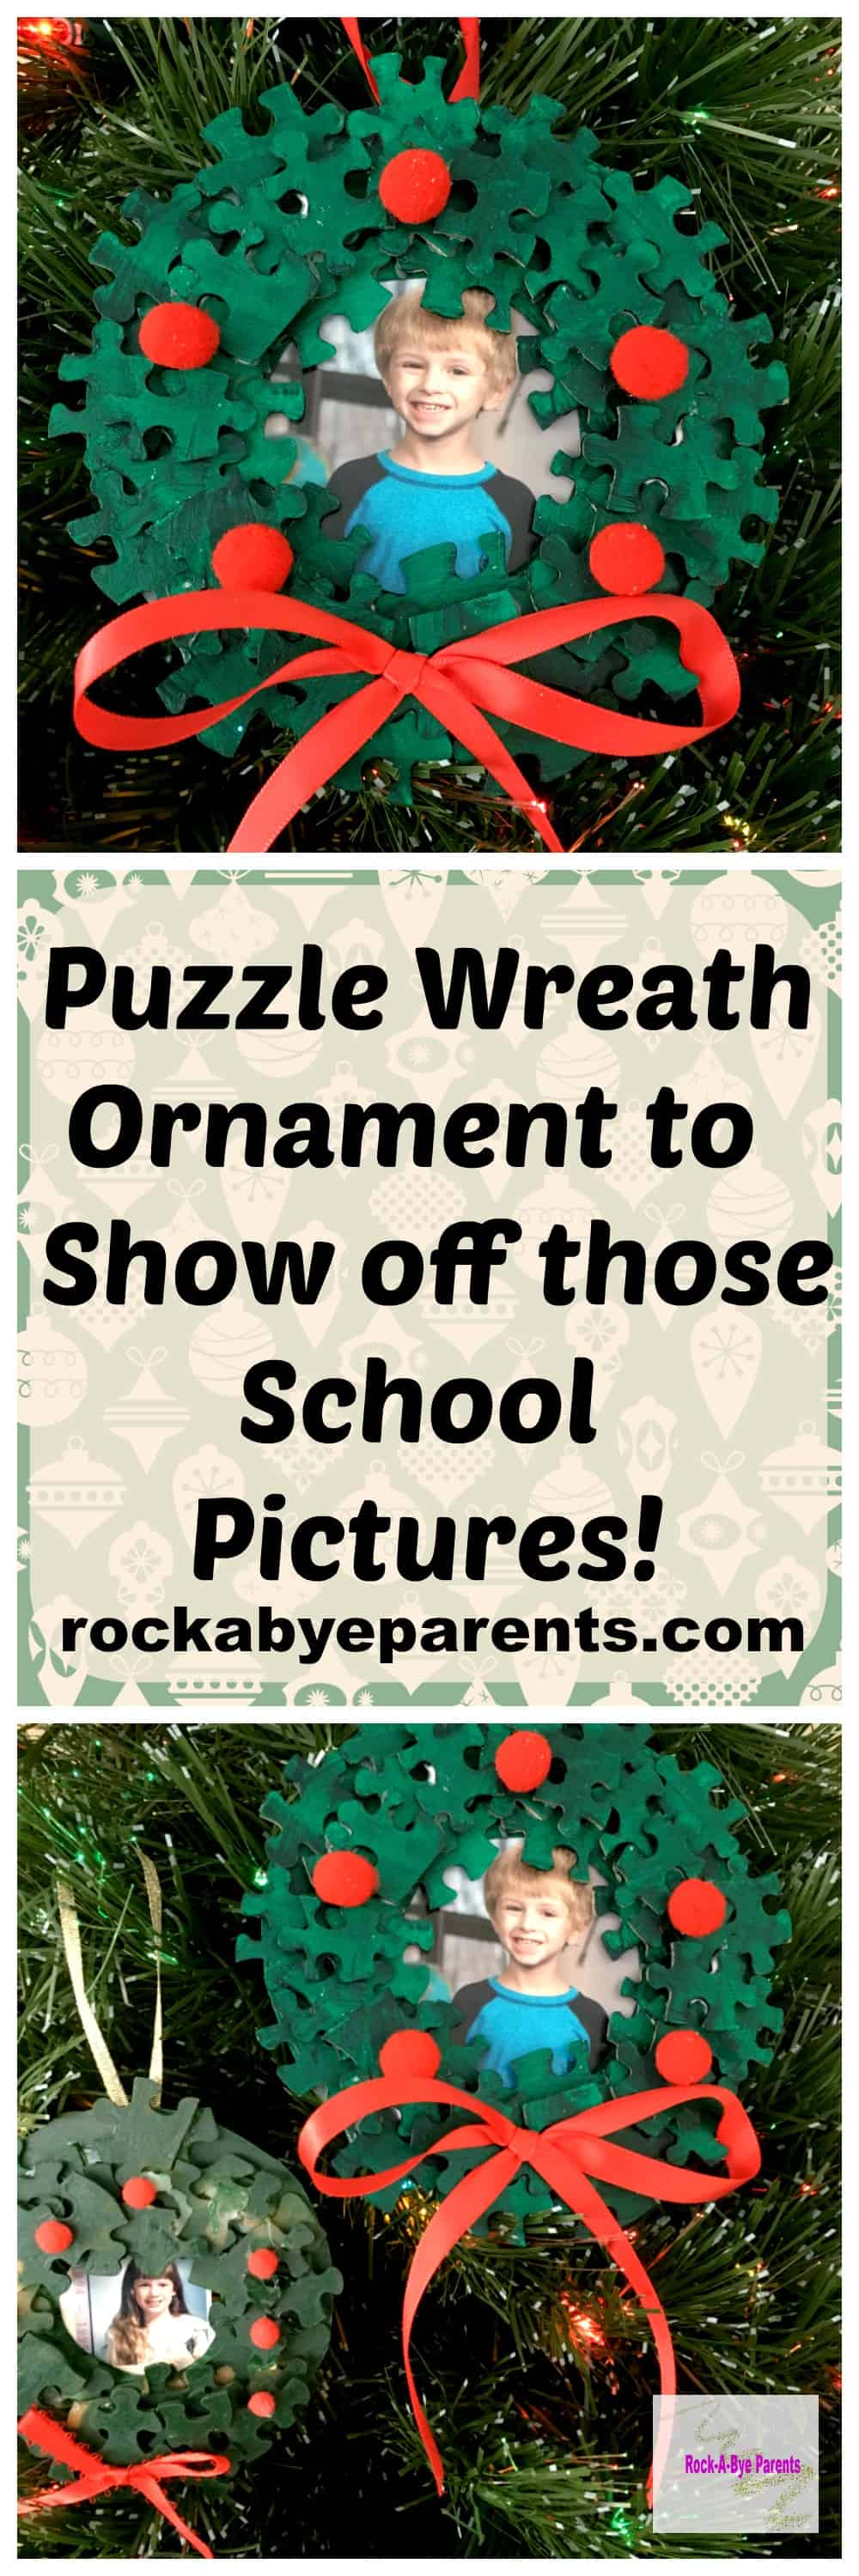 Puzzle Wreath Ornament to Show off those School Pictures! - rockabyeparents.com